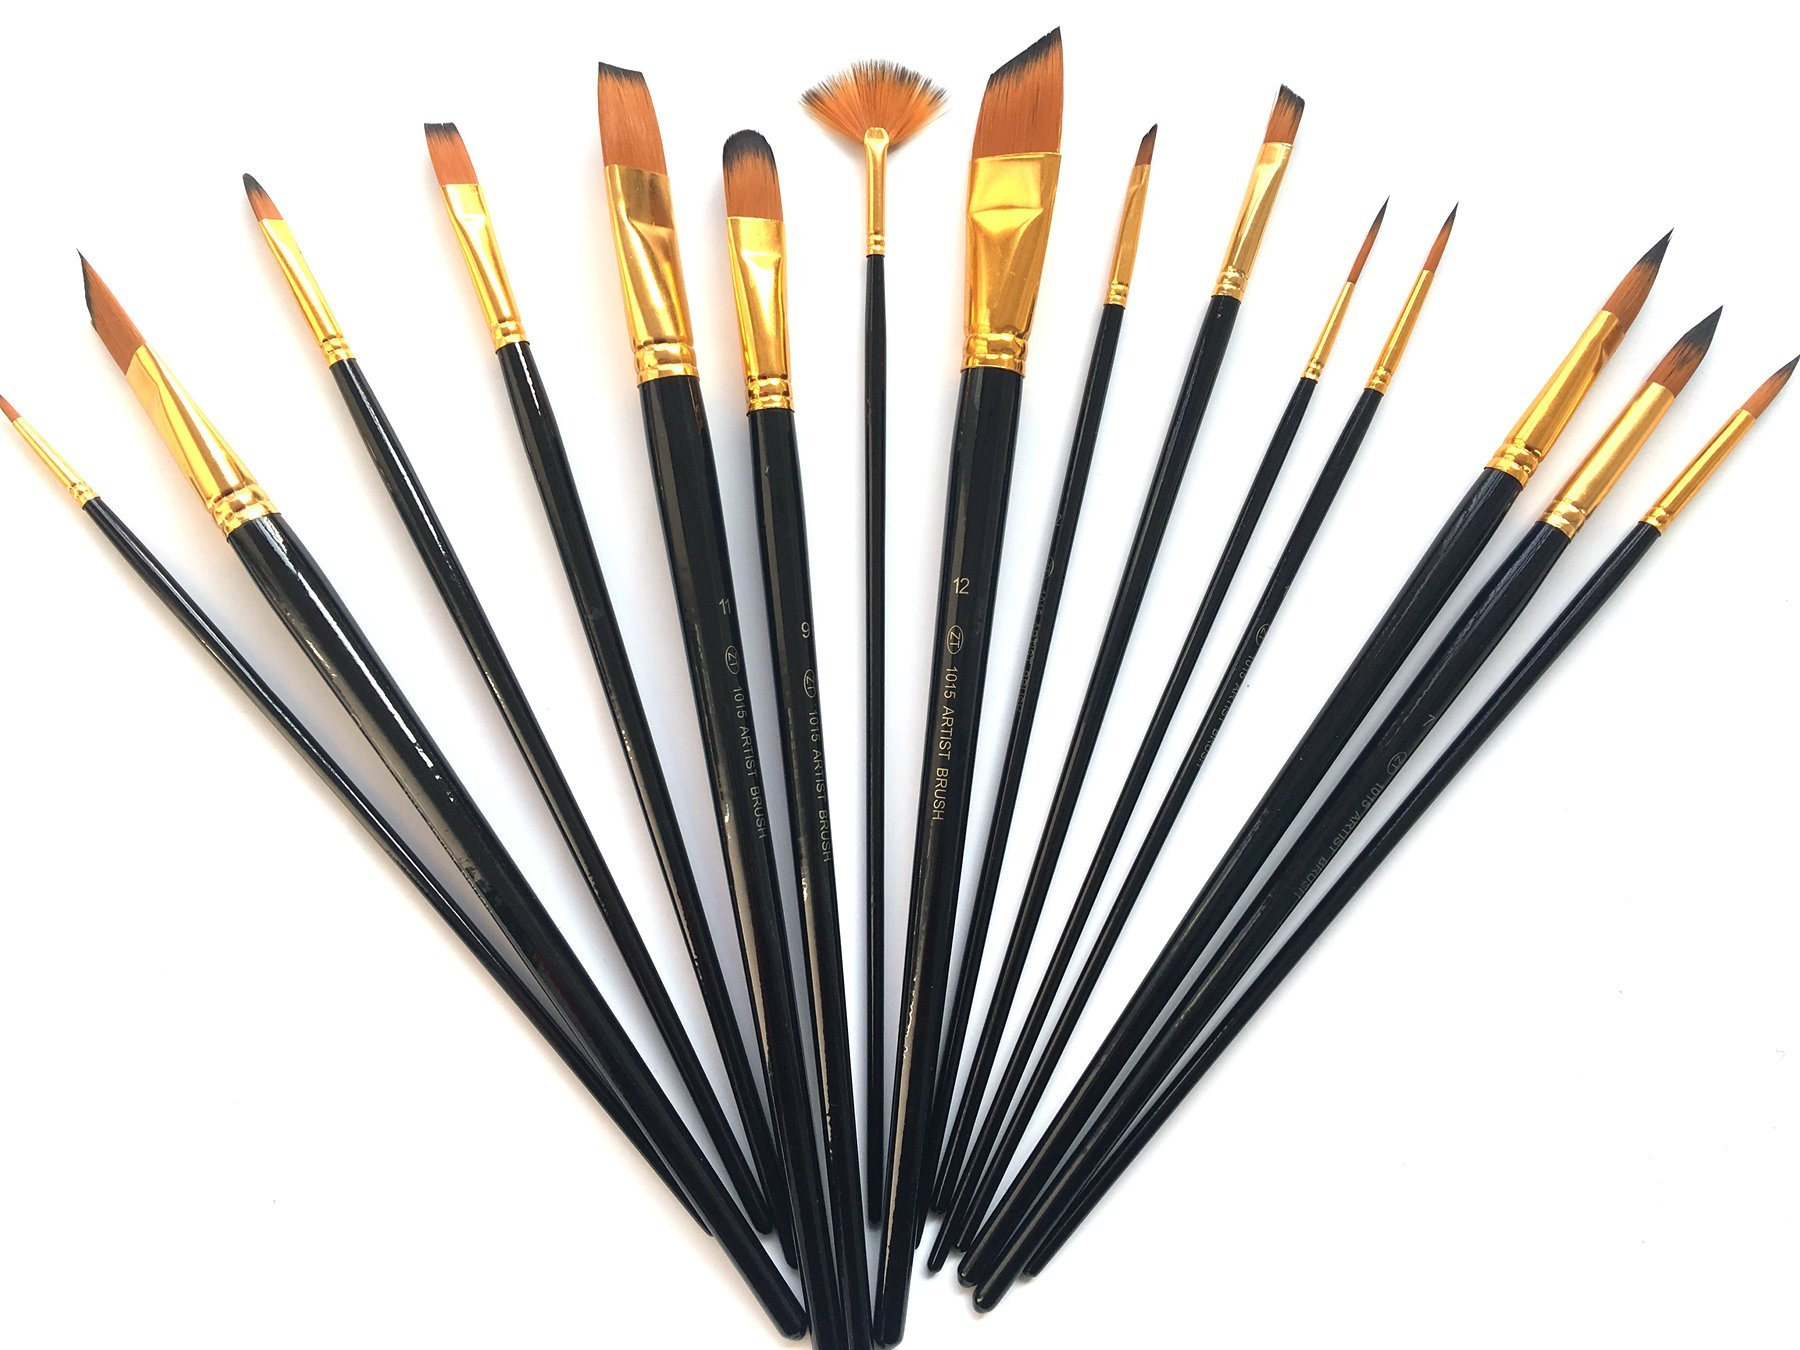 Timemorry 10/12/15 Pieces Painting Brushes with Carry Case, Nylon Hair + Wooden Handle Artist Paint Brushes for Acrylic, Oil, Watercolor Painting (15Pieces, Black)